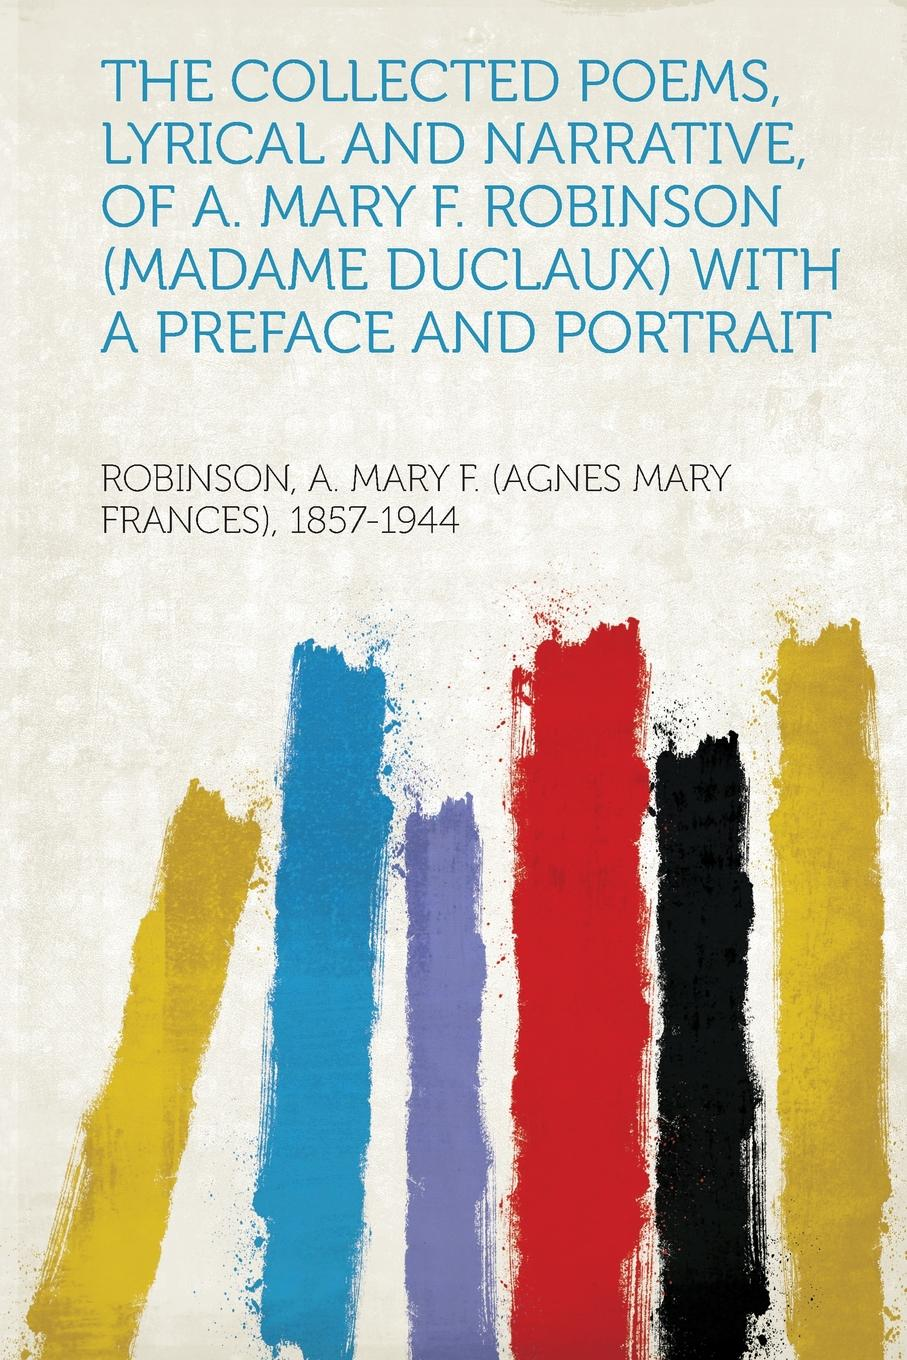 Robinson A. Mary F. (Agnes M 1857-1944 The Collected Poems, Lyrical and Narrative, of A. Mary F. Robinson (Madame Duclaux) With a Preface and Portrait